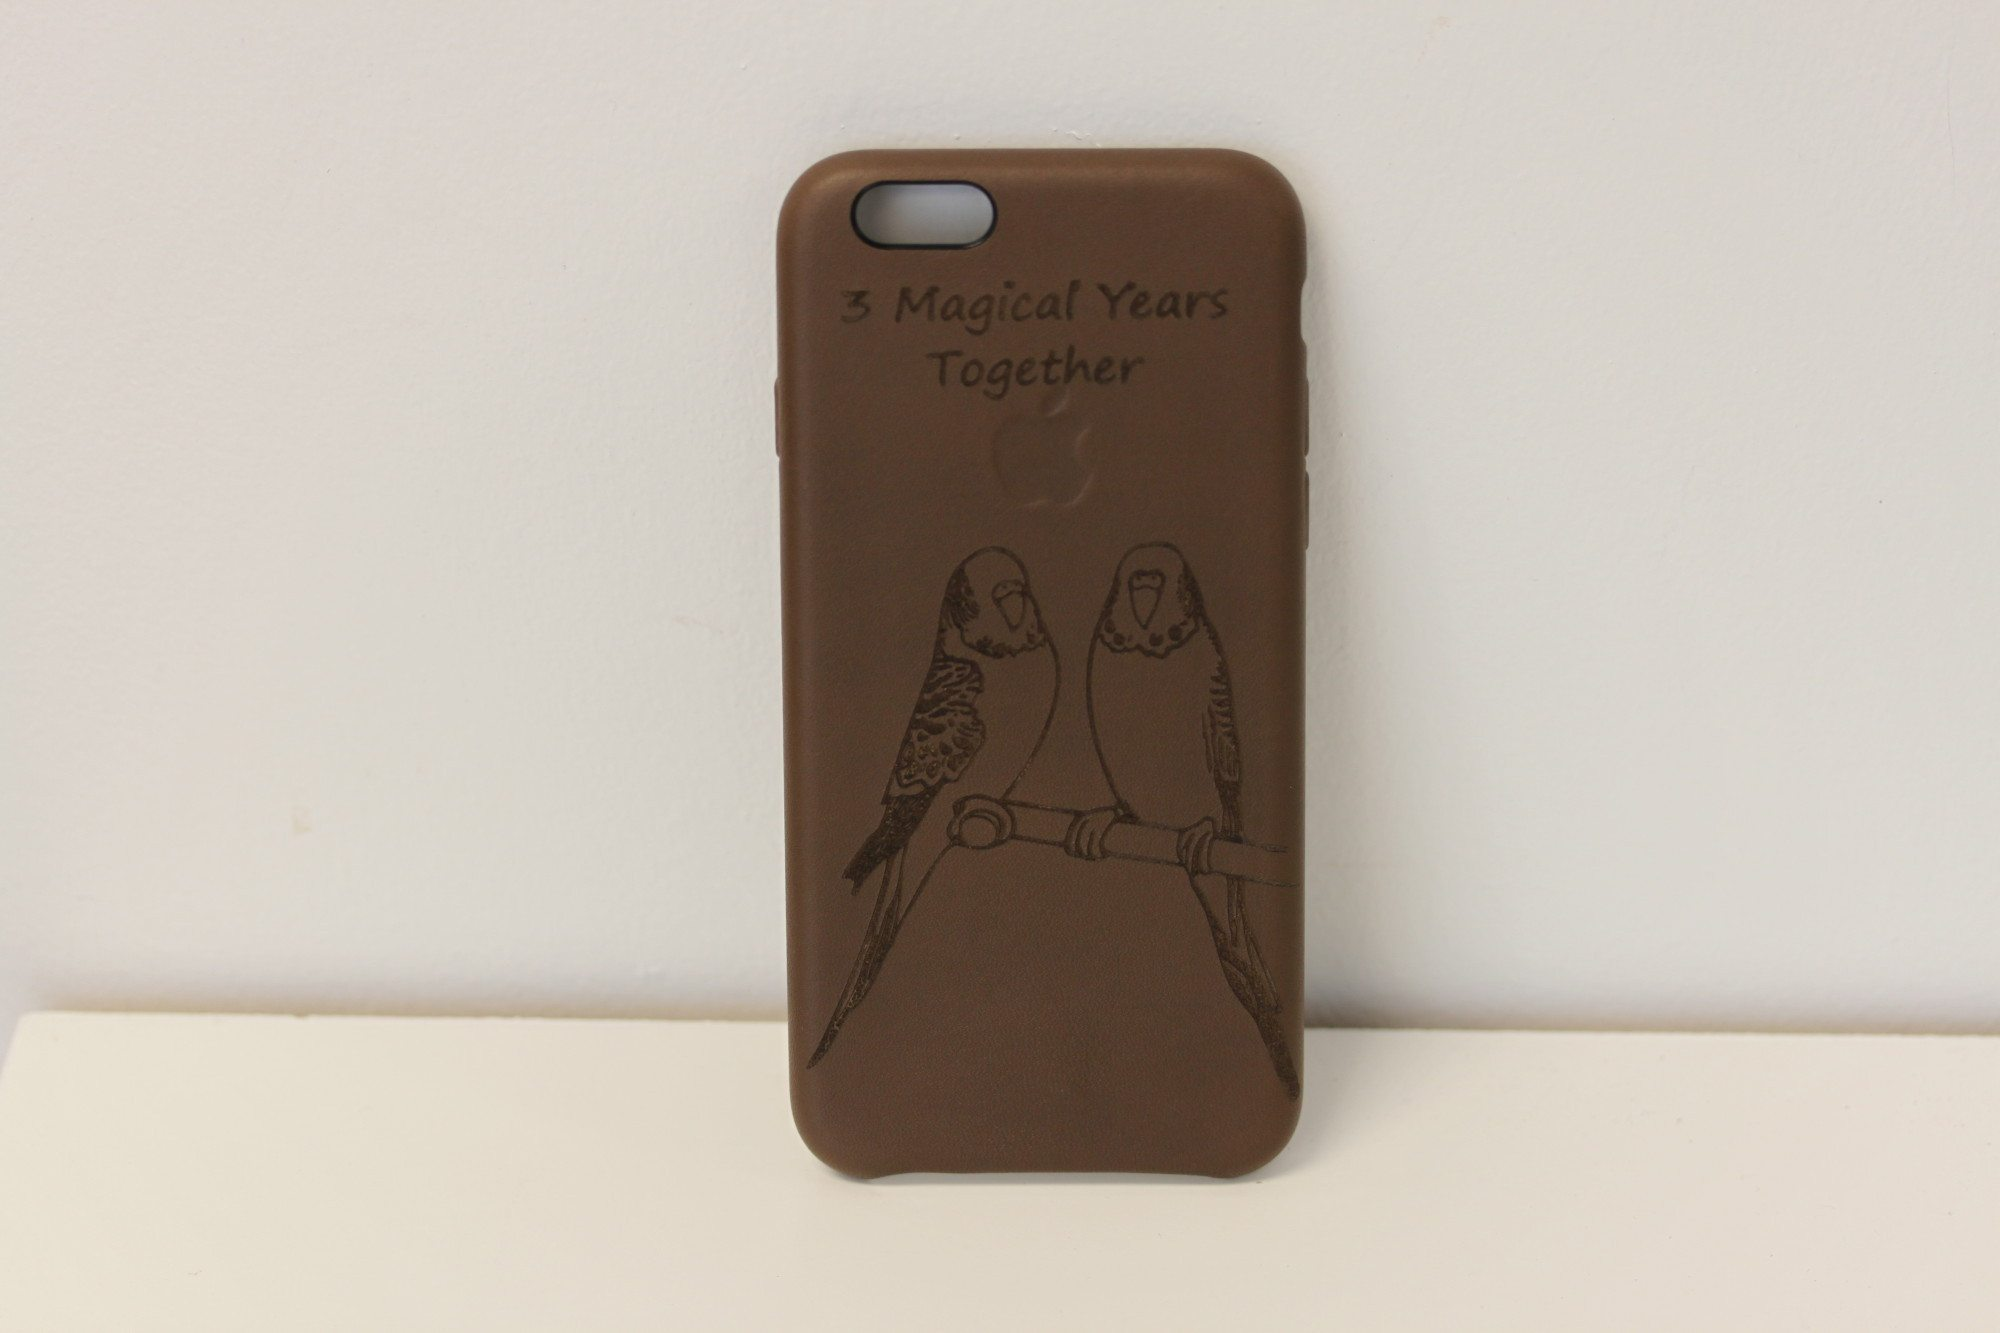 laser engraved leather iphone case olive brown in a